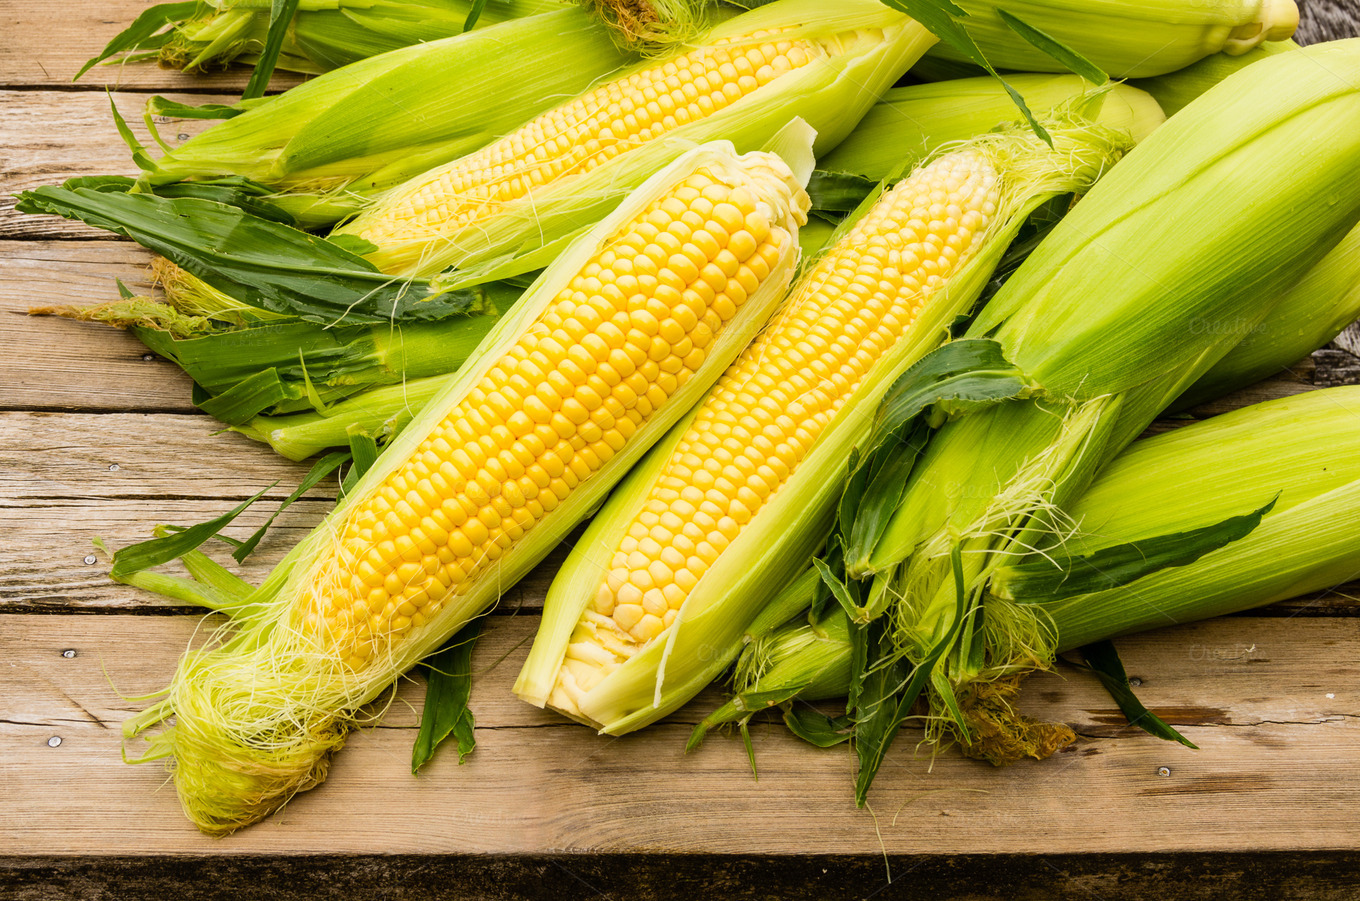 Fresh yellow sweet corn ~ Food & Drink Photos on Creative Market